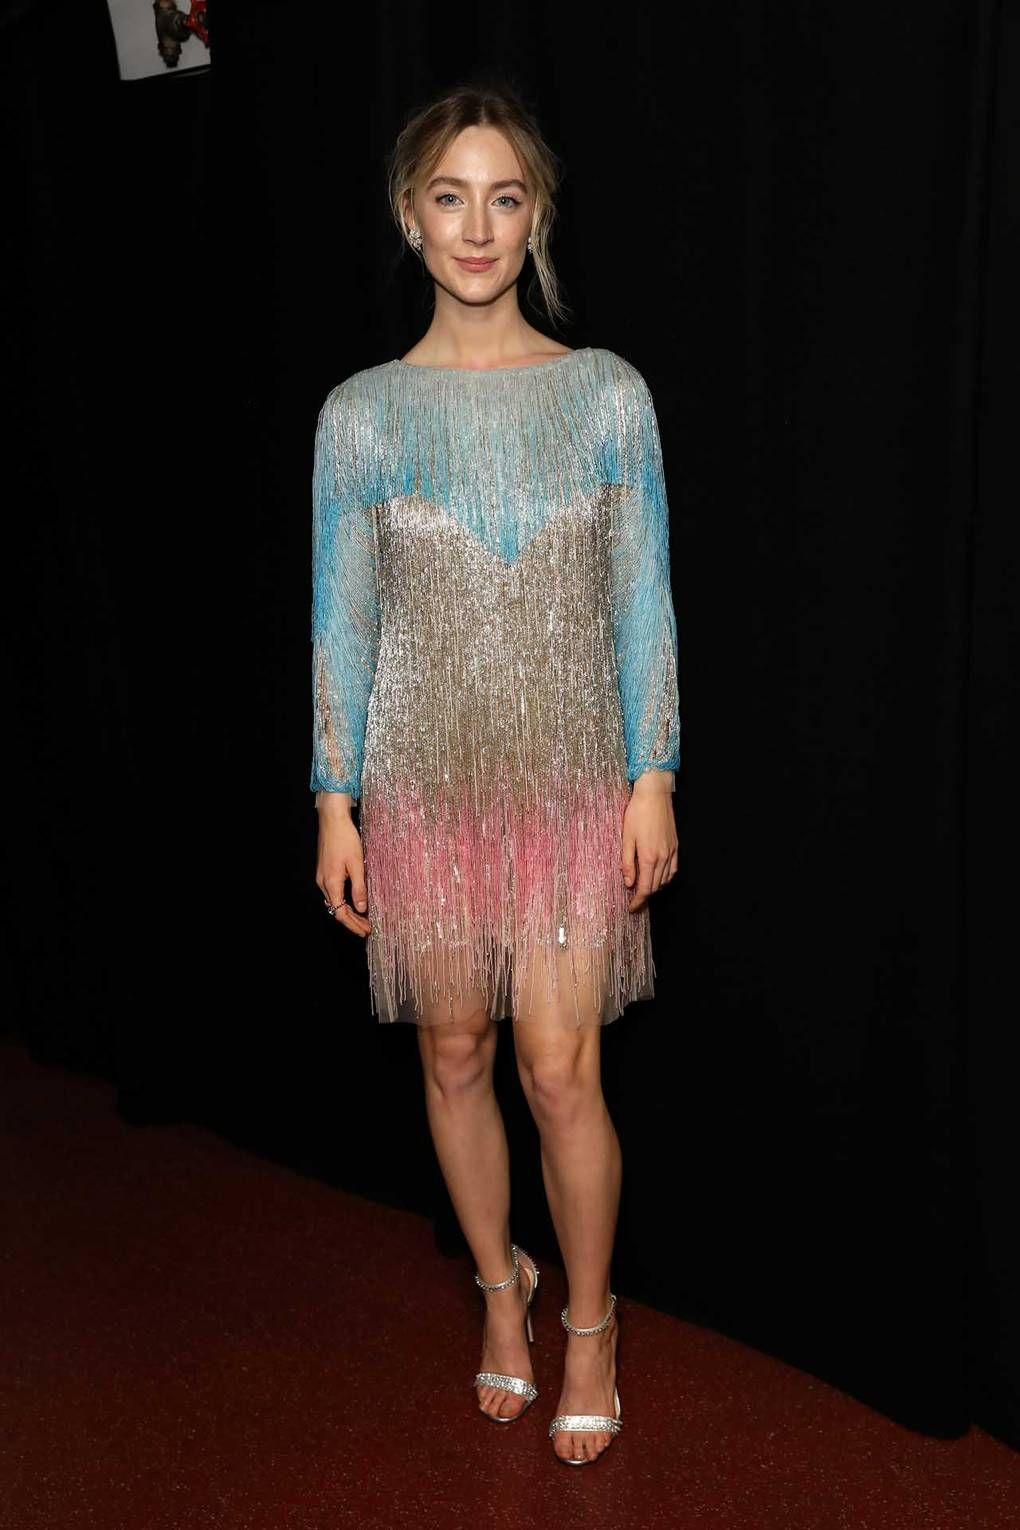 db4a8bd6d27 Best Dressed On The Fashion Awards 2018 Red Carpet